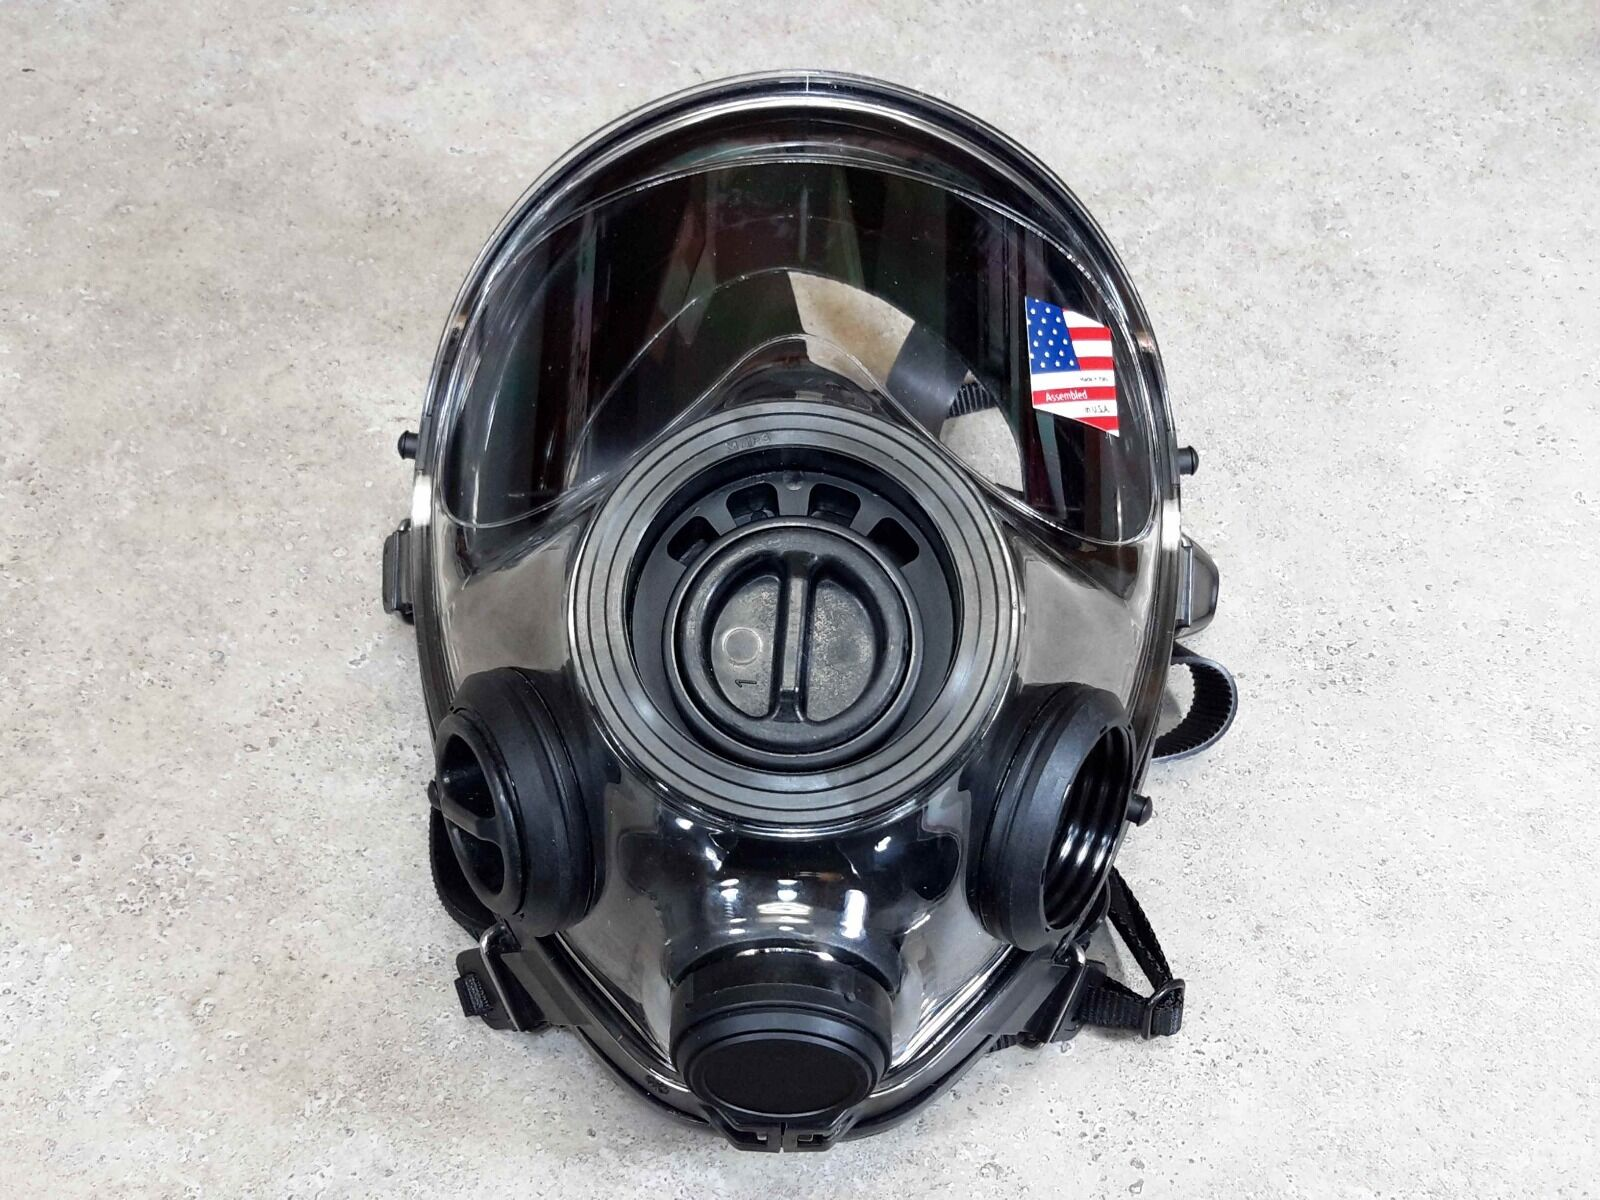 SGE 400/3 Gas Mask / Respirator - CBRN & NBC Protection -NEW - Made March 2019 !